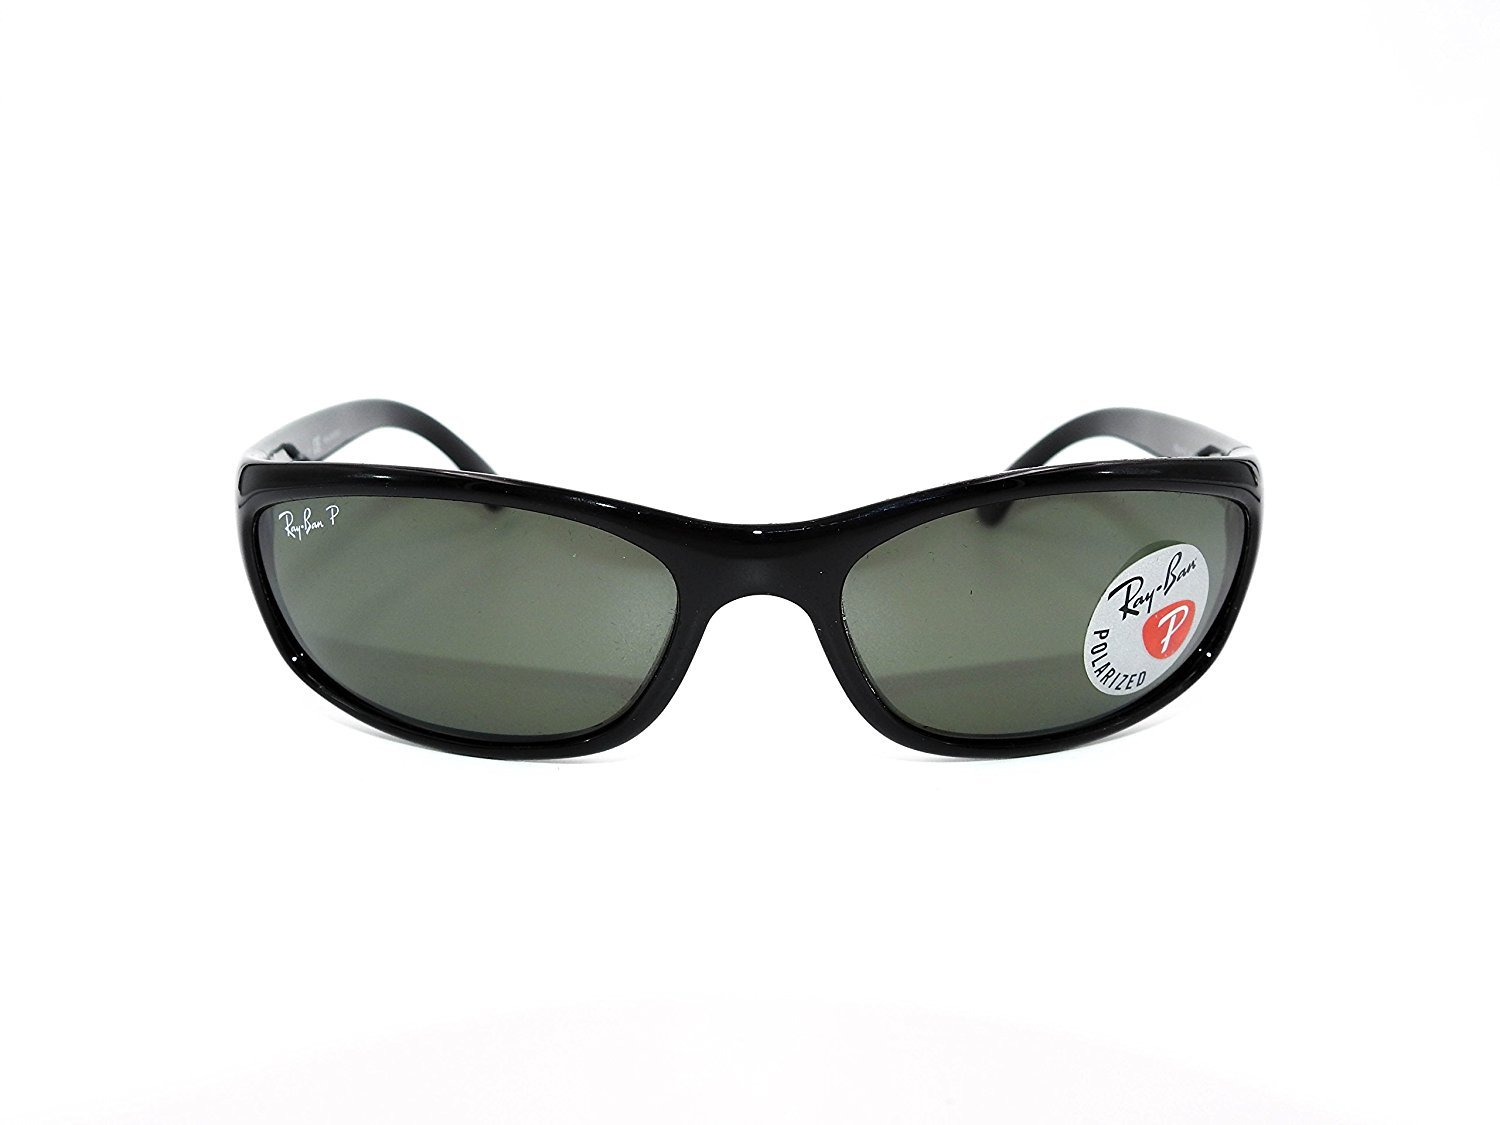 064750d47b Ray-Ban fast   furious sunglasses RB 4115 polarized 601 9A 57-16